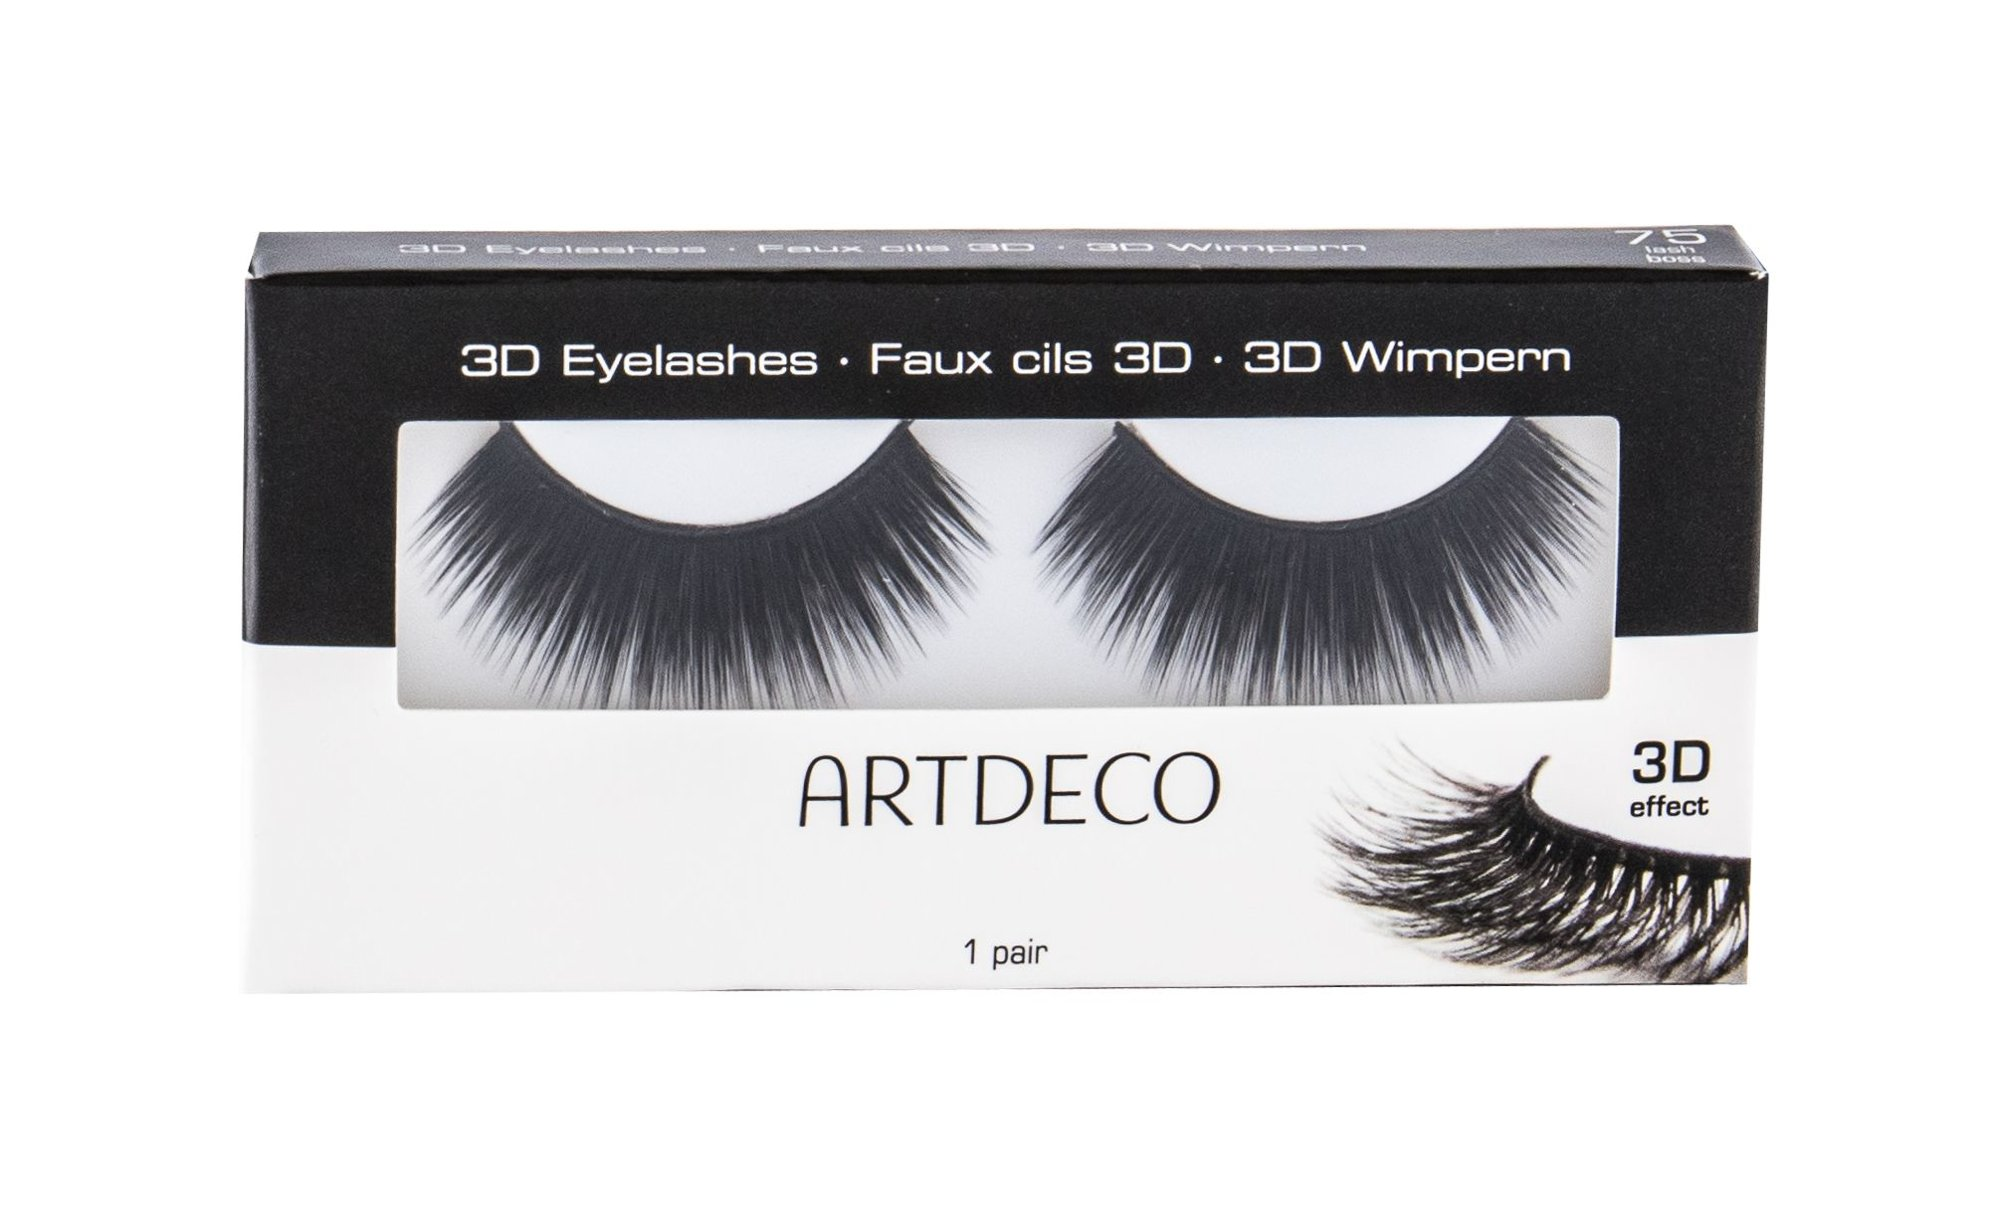 Artdeco 3D Eyelashes False Eyelashes 1ml 75 Lash Boss